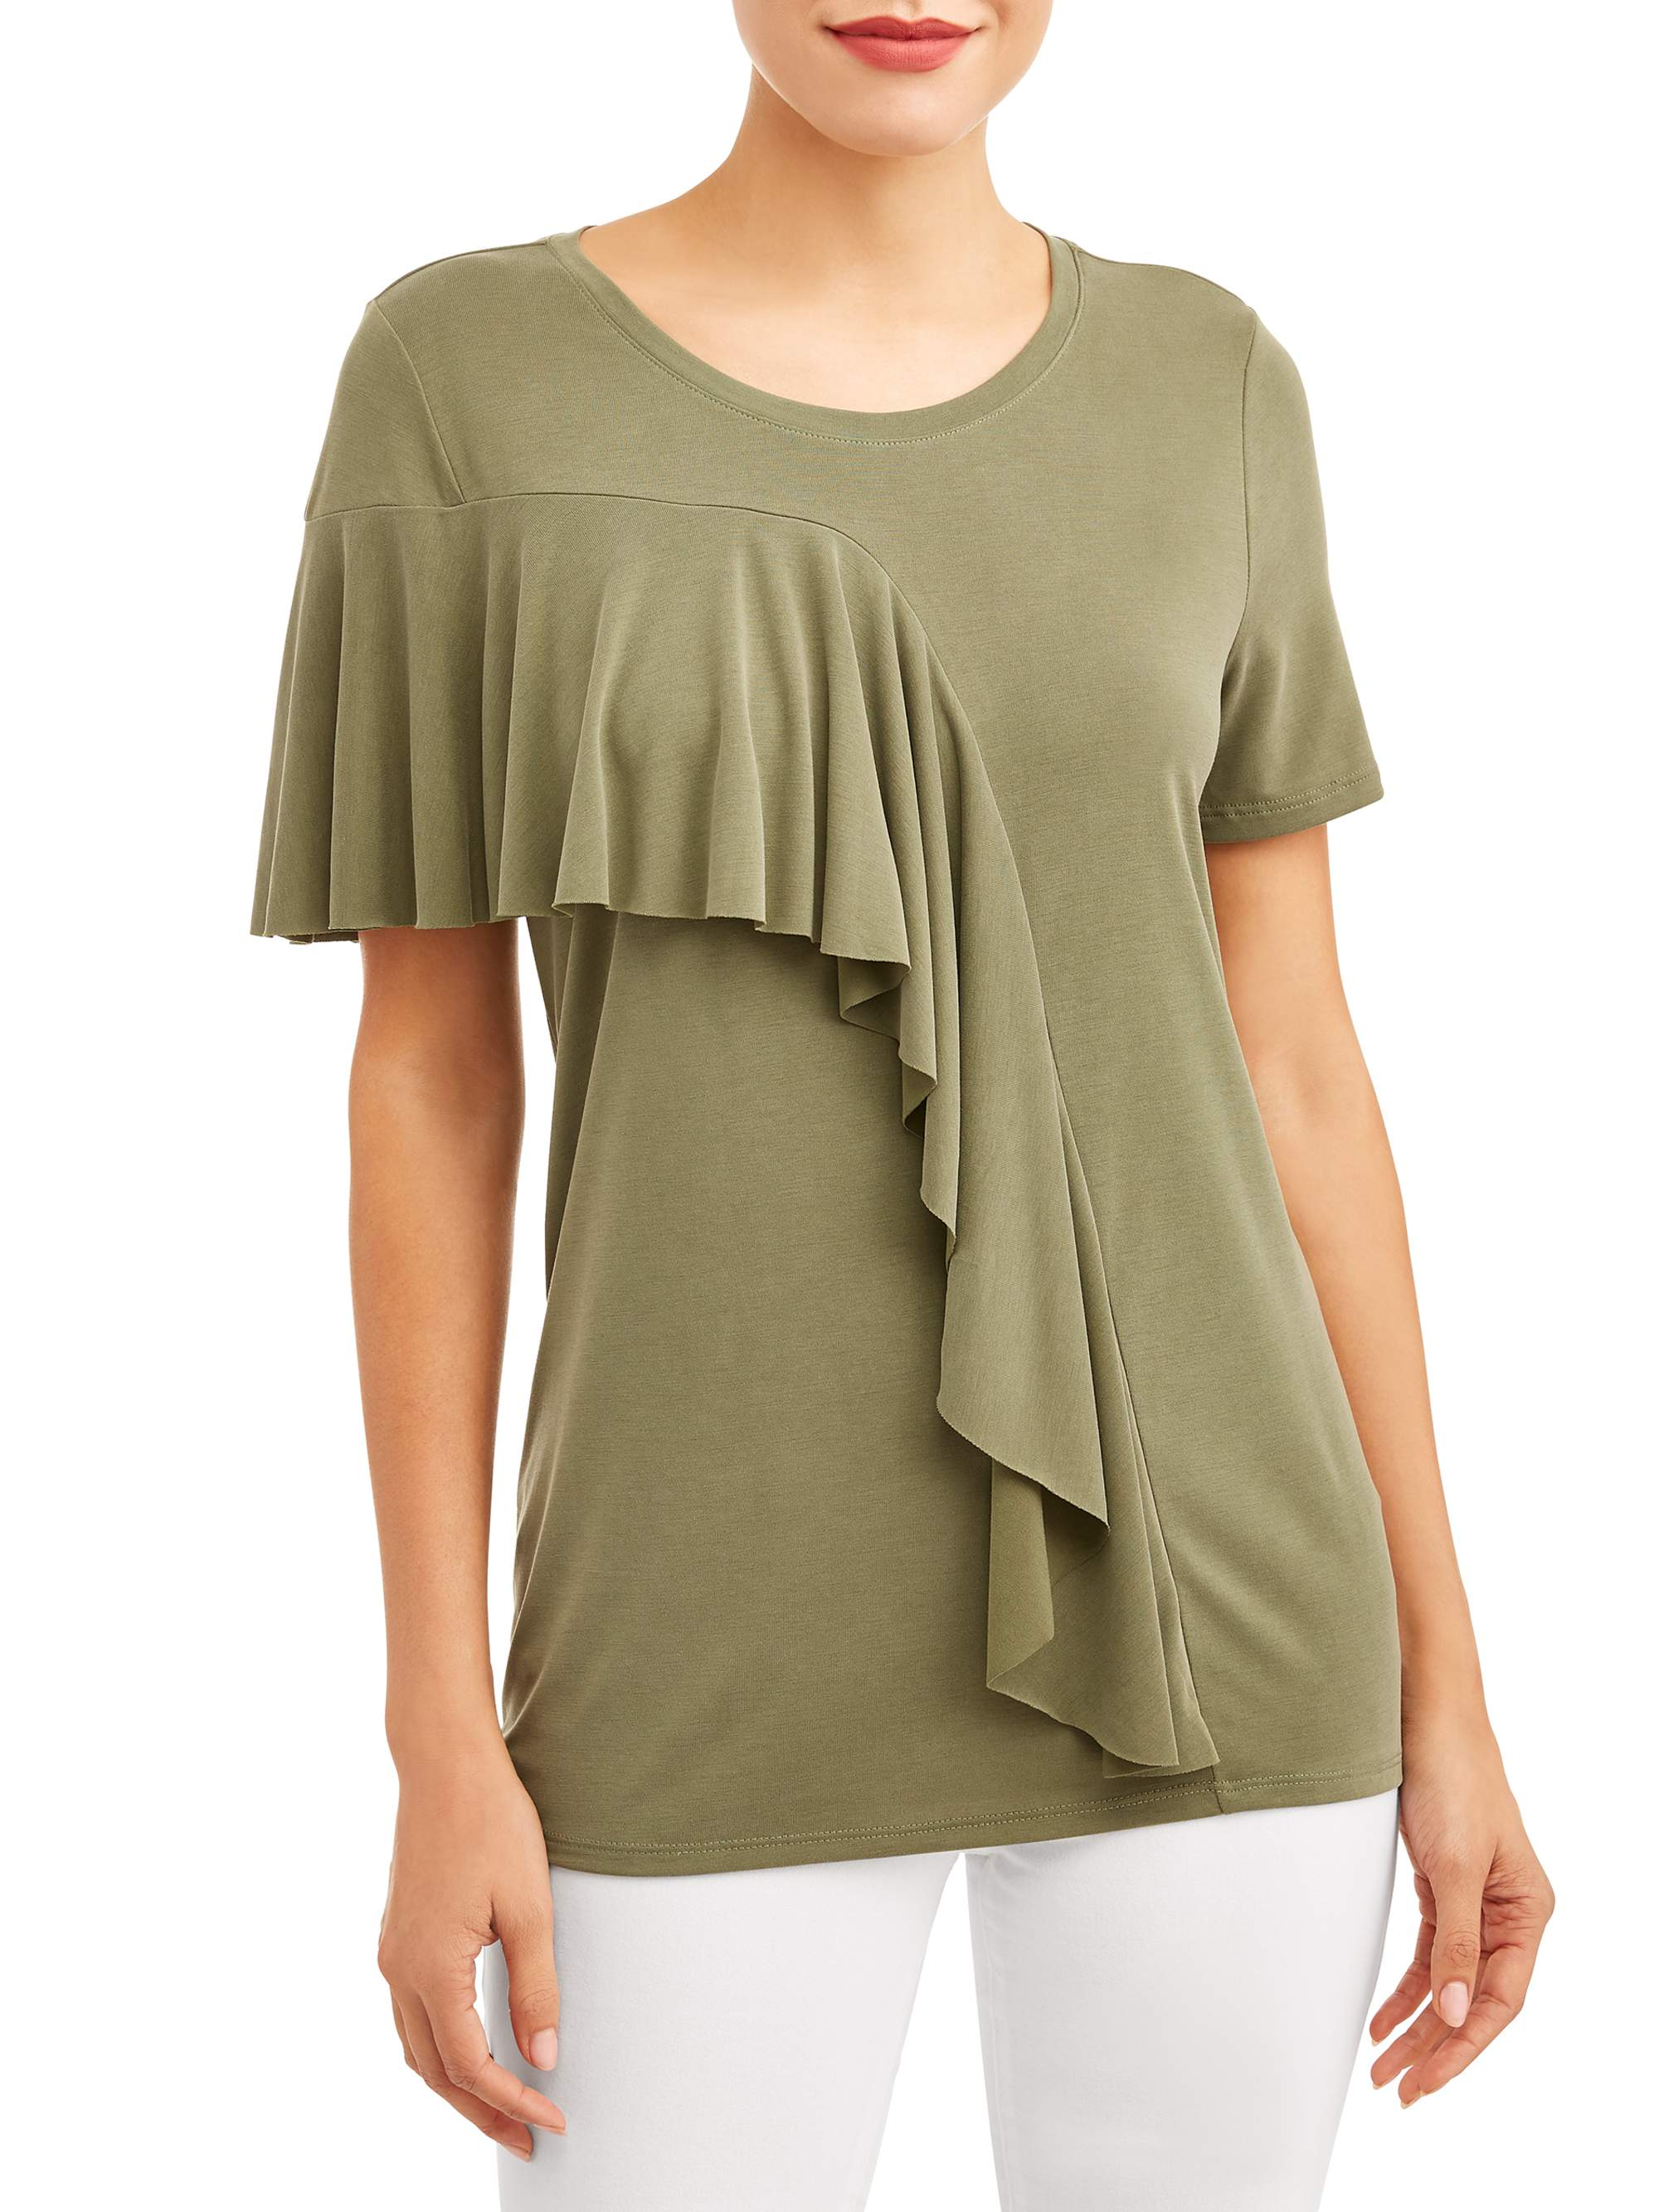 Women's Short Sleeve Ruffle T-Shirt